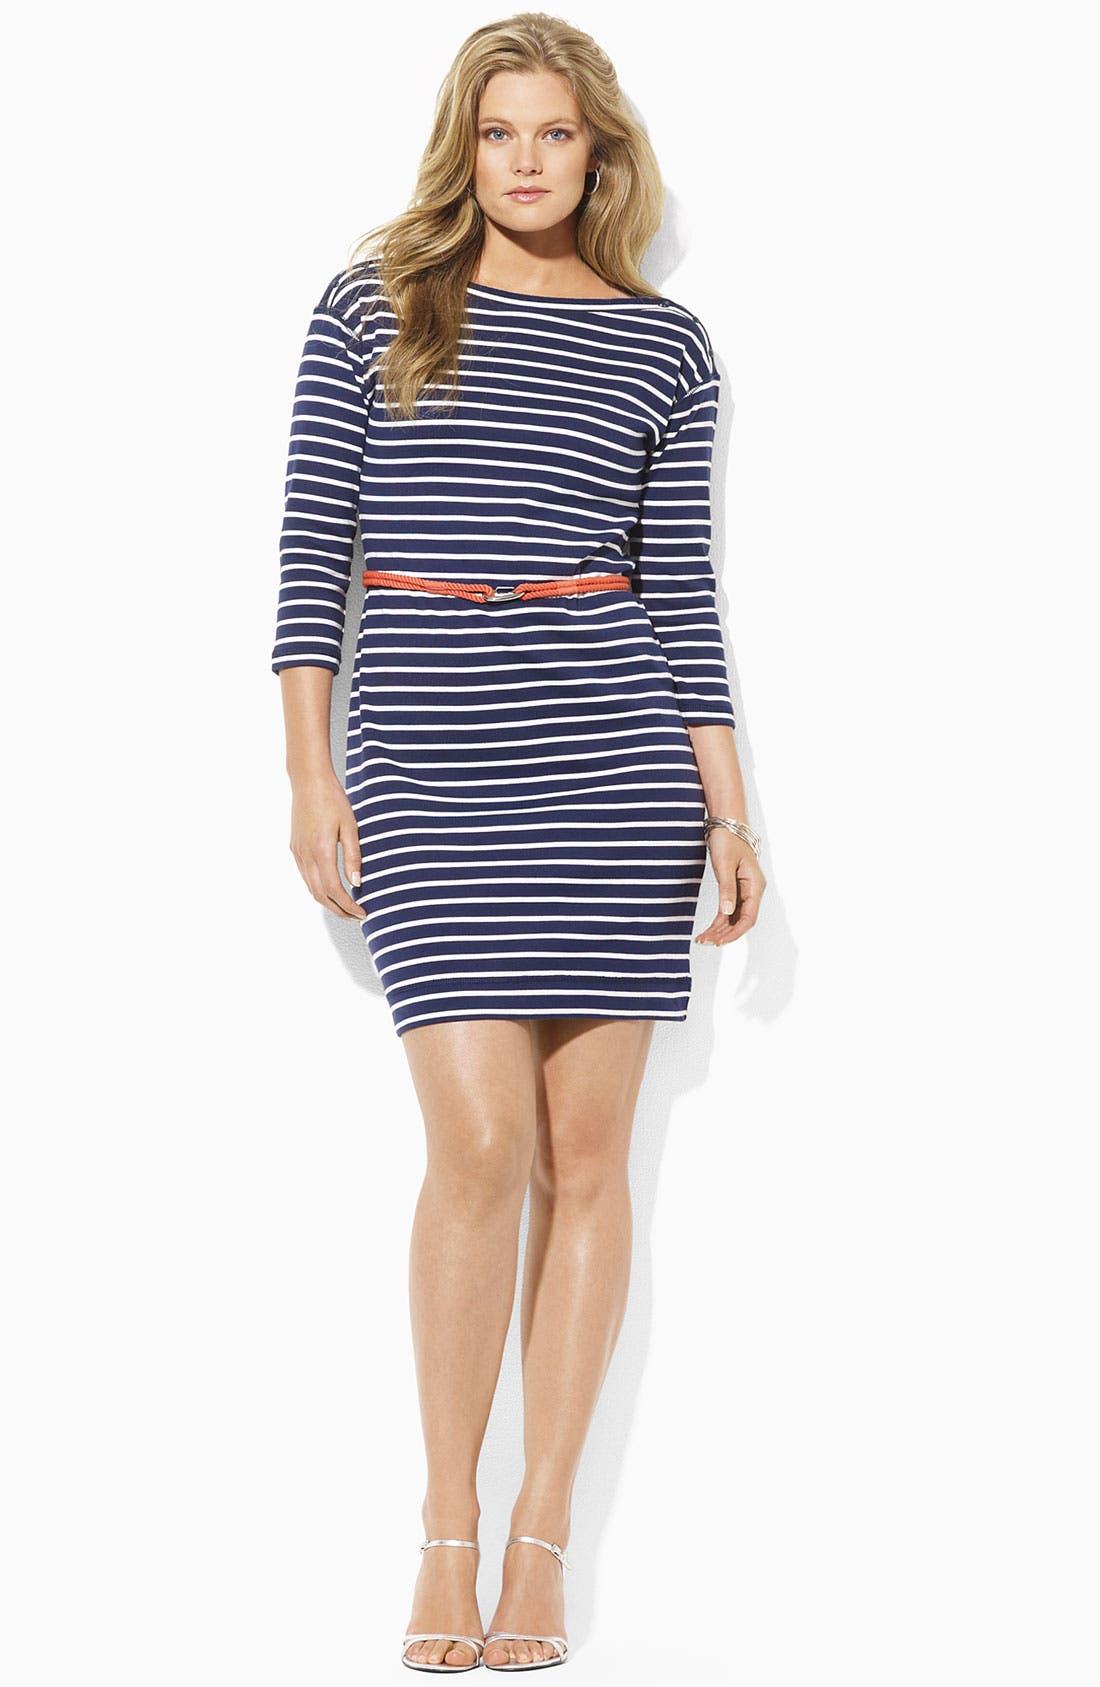 Alternate Image 1 Selected - Lauren Ralph Lauren Belted Stripe Knit Sheath Dress (Plus)